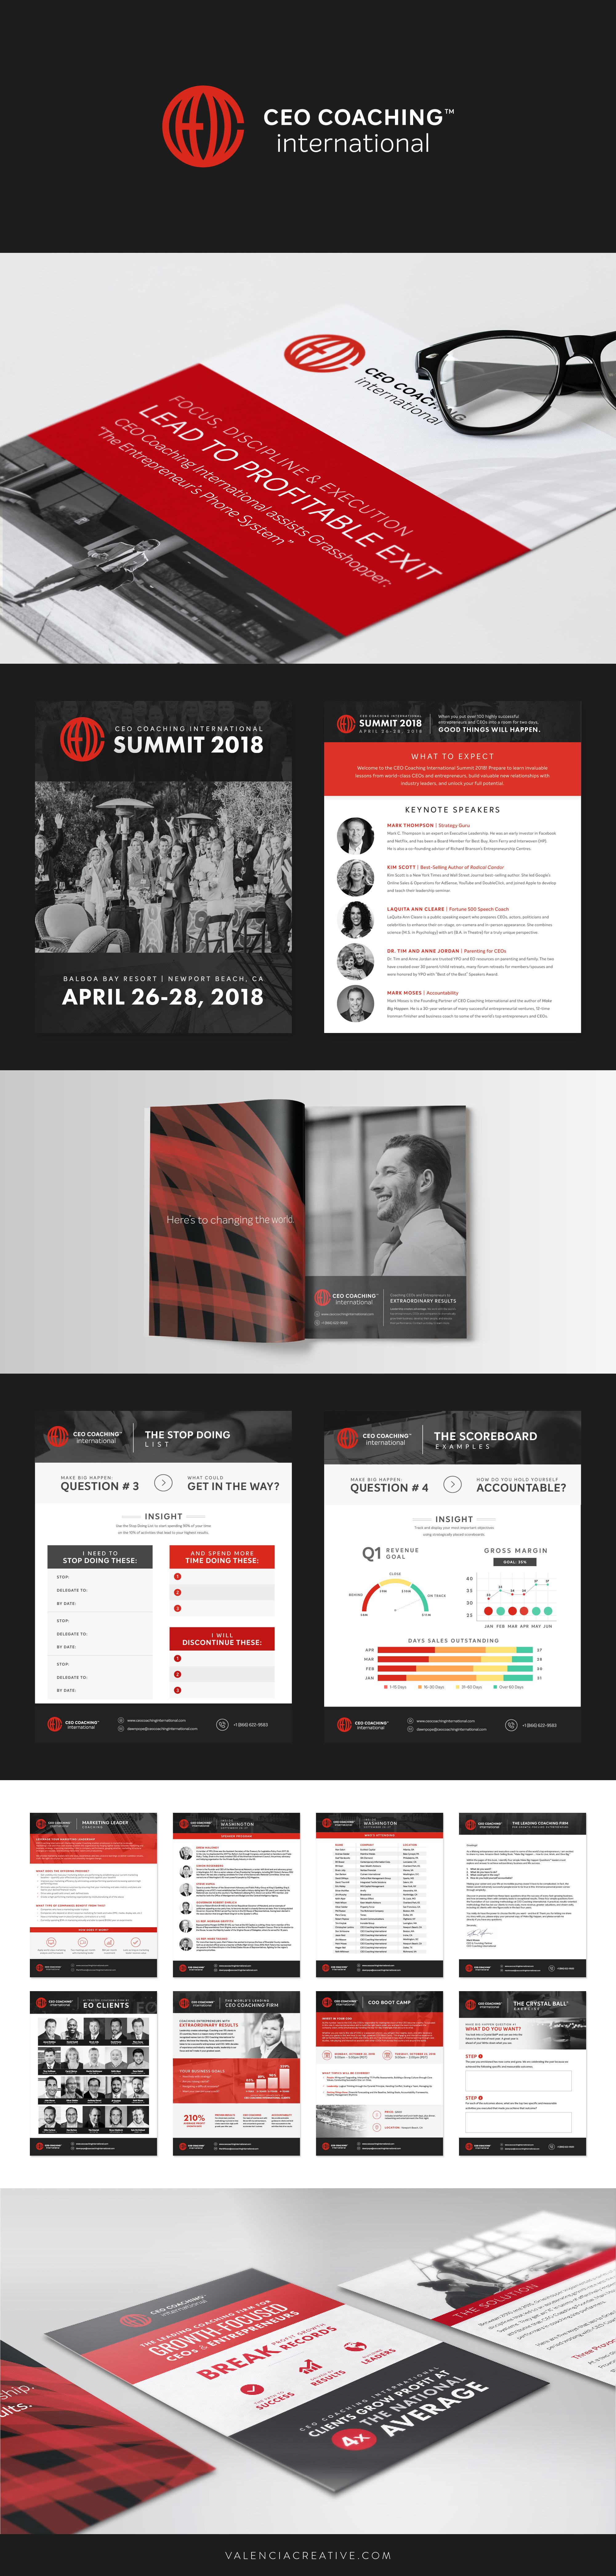 CEO Coaching International - Design Collateral.jpg